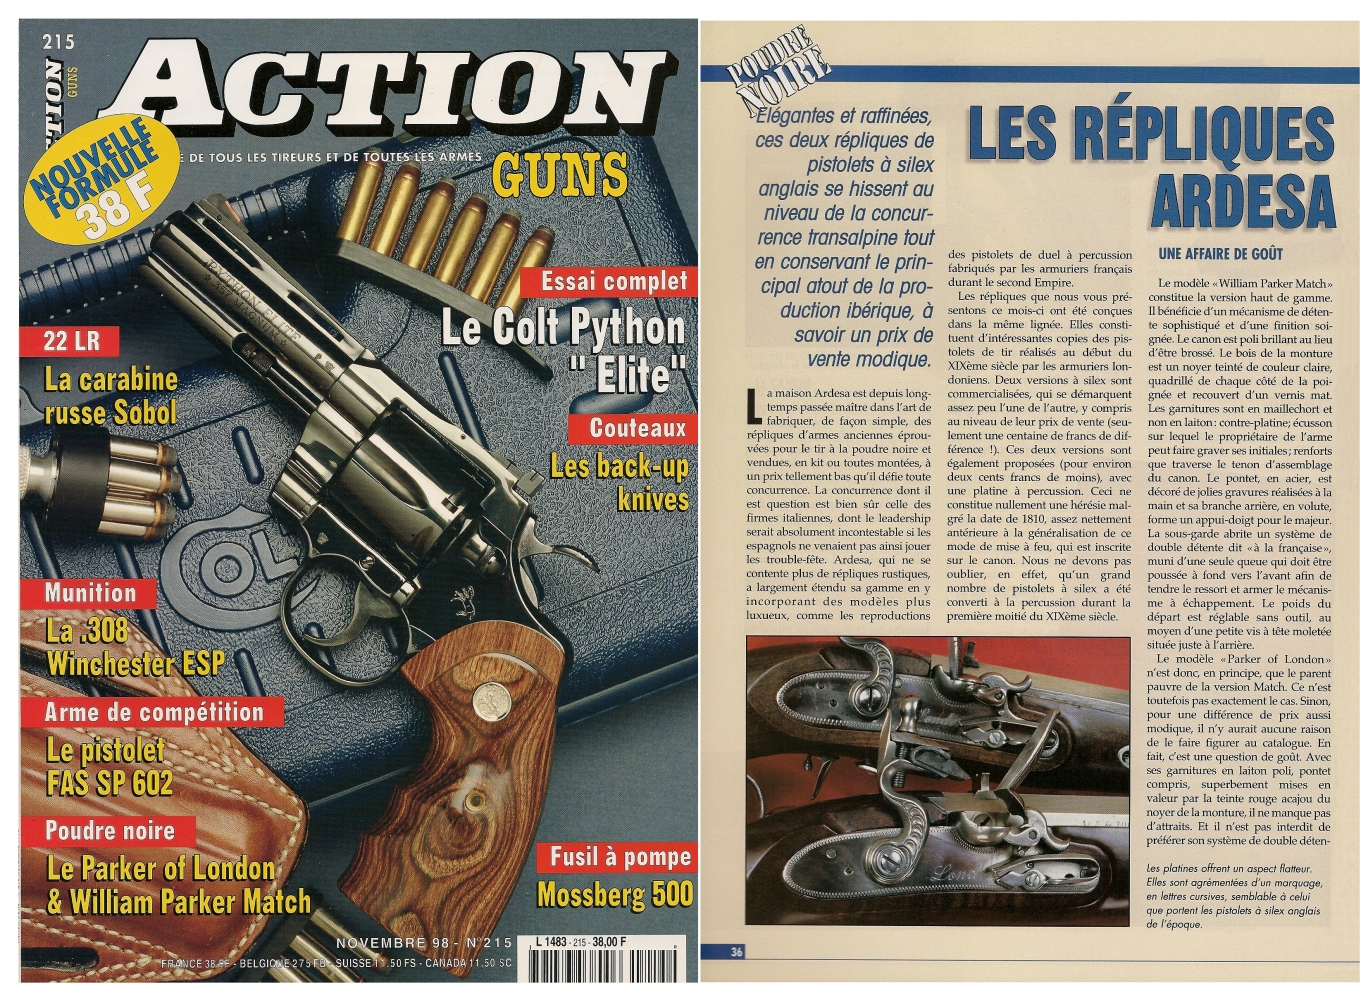 Le banc d'essai des pistolets « Parker of London » et « William Parker Match » a été publié sur 5 pages dans le magazine Action Guns n°215 (novembre 1998).